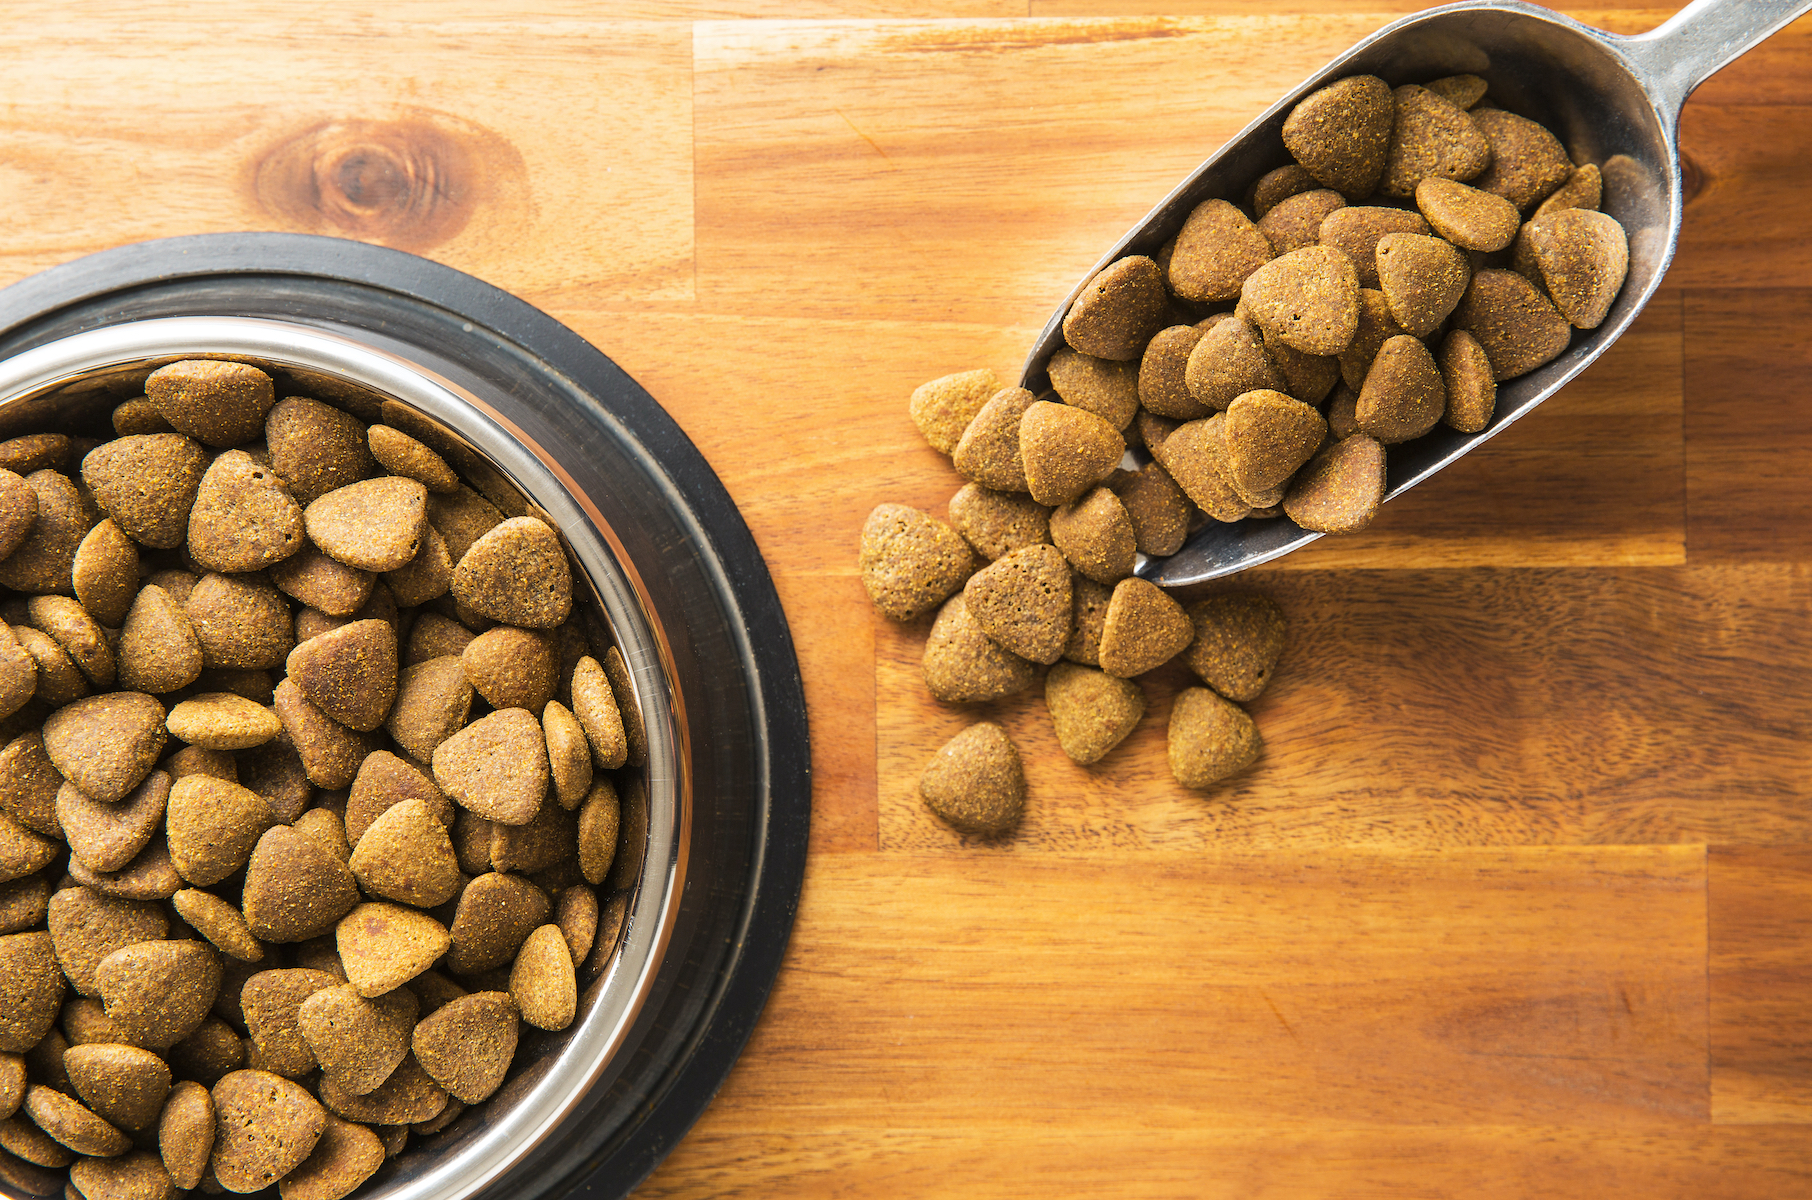 Canva - Dry kibble dog food